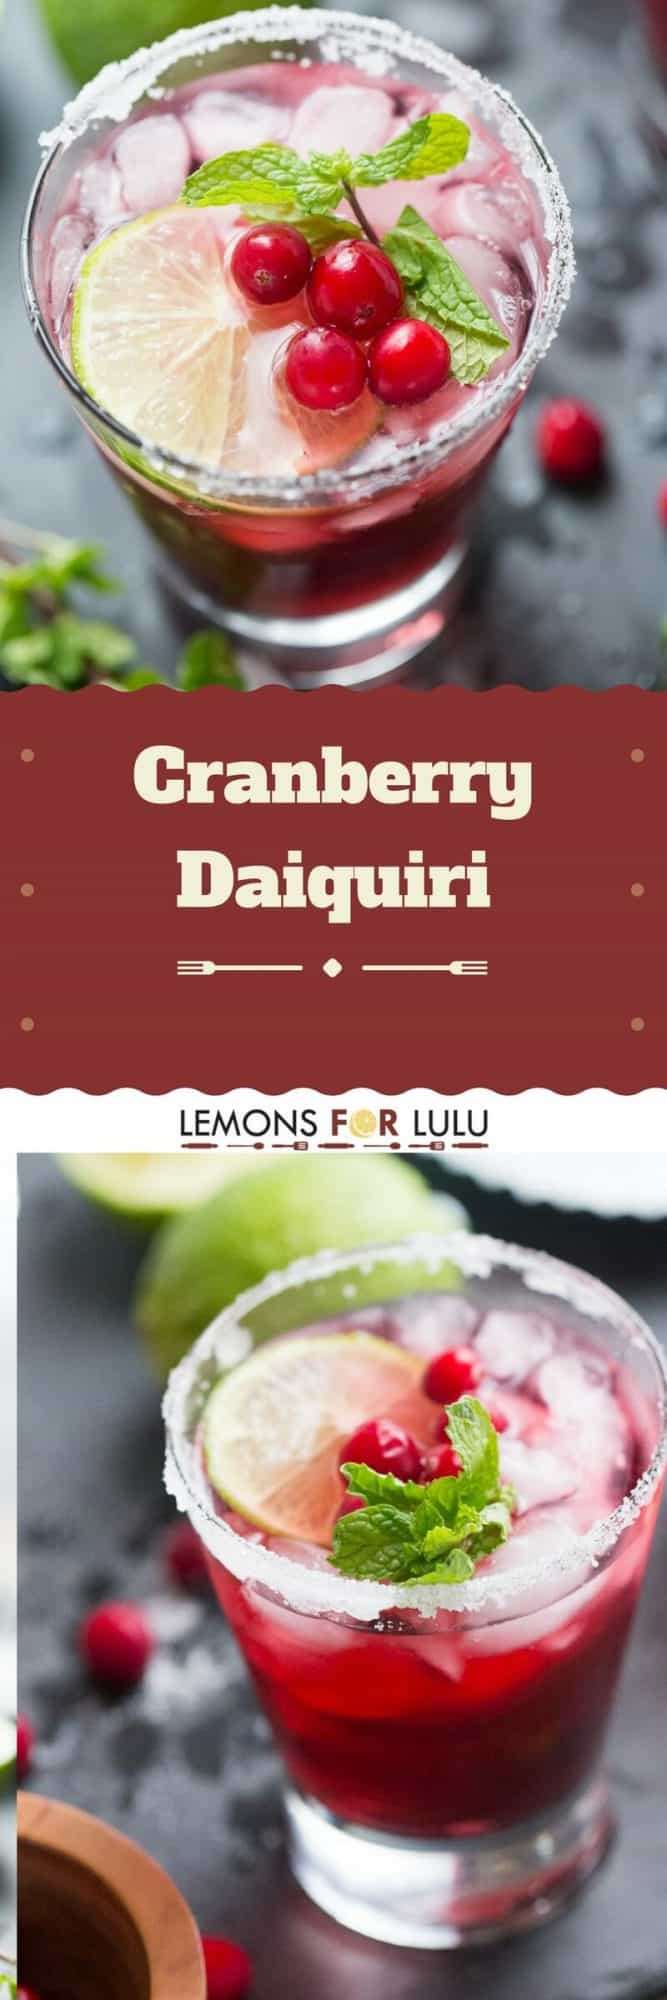 Want to liven up your party? Serve up this cranberry daiquiri for a unique and festive cocktail!